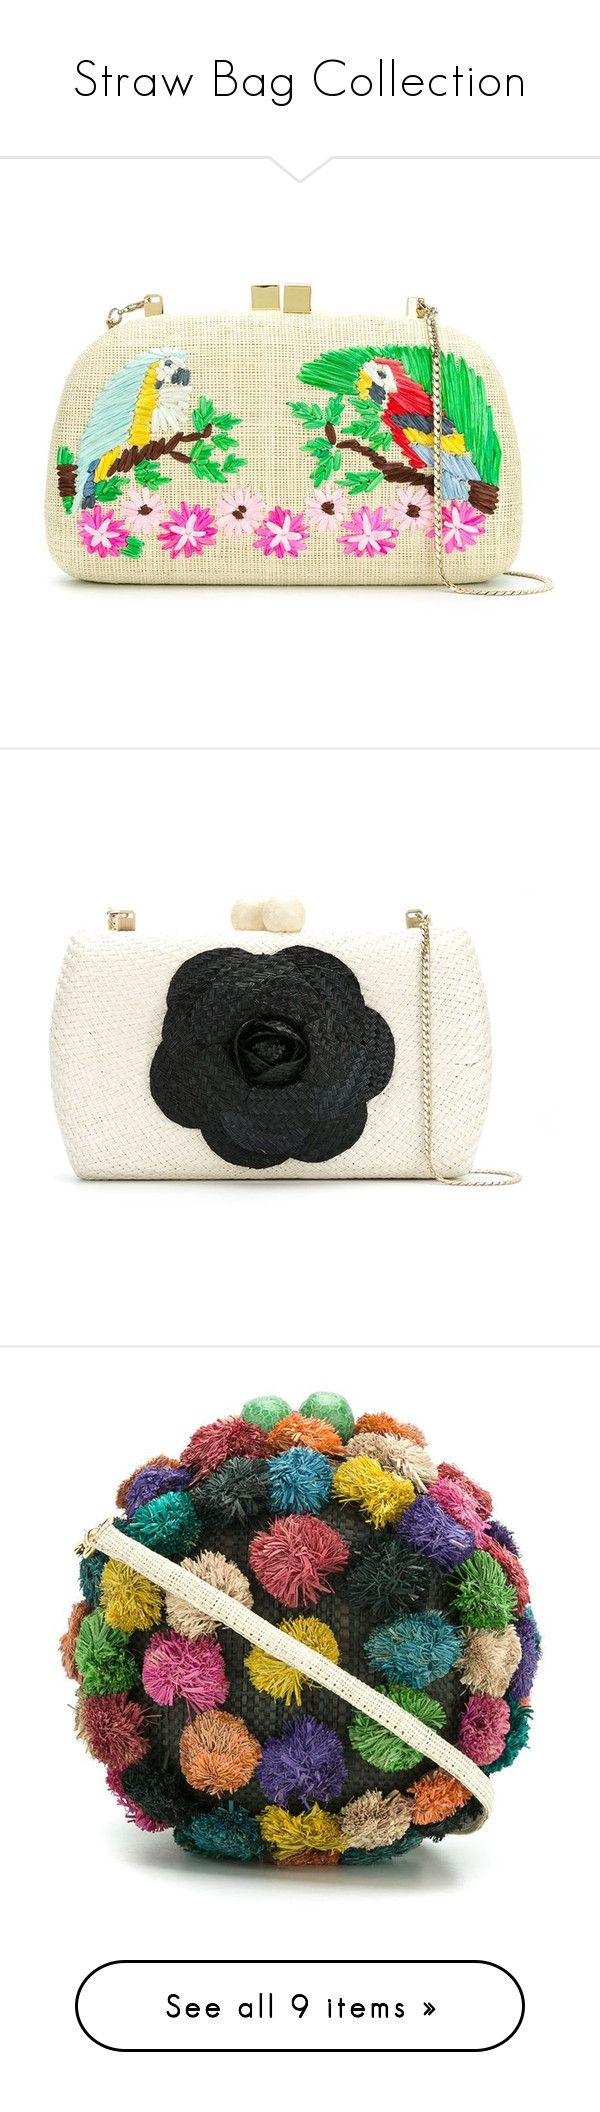 """""""Straw Bag Collection"""" by modalist ❤ liked on Polyvore featuring bags, handbags, clutches, straw clutches, embroidered purse, straw purse, beige clutches, straw handbags, black white handbag and black and white purse"""